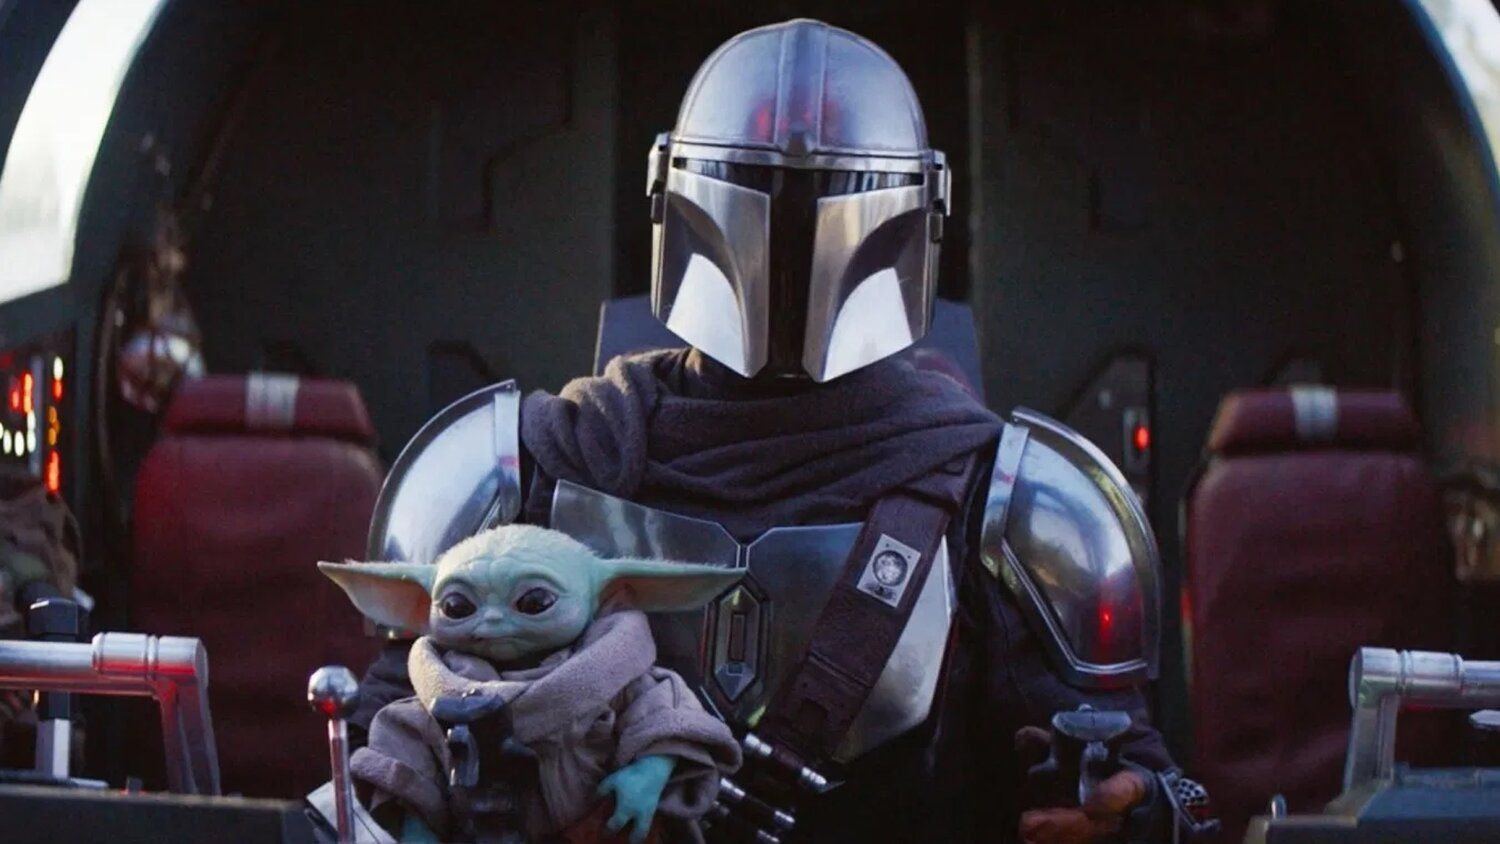 The Mandalorian Season 2 Release Date and Plot Predictions